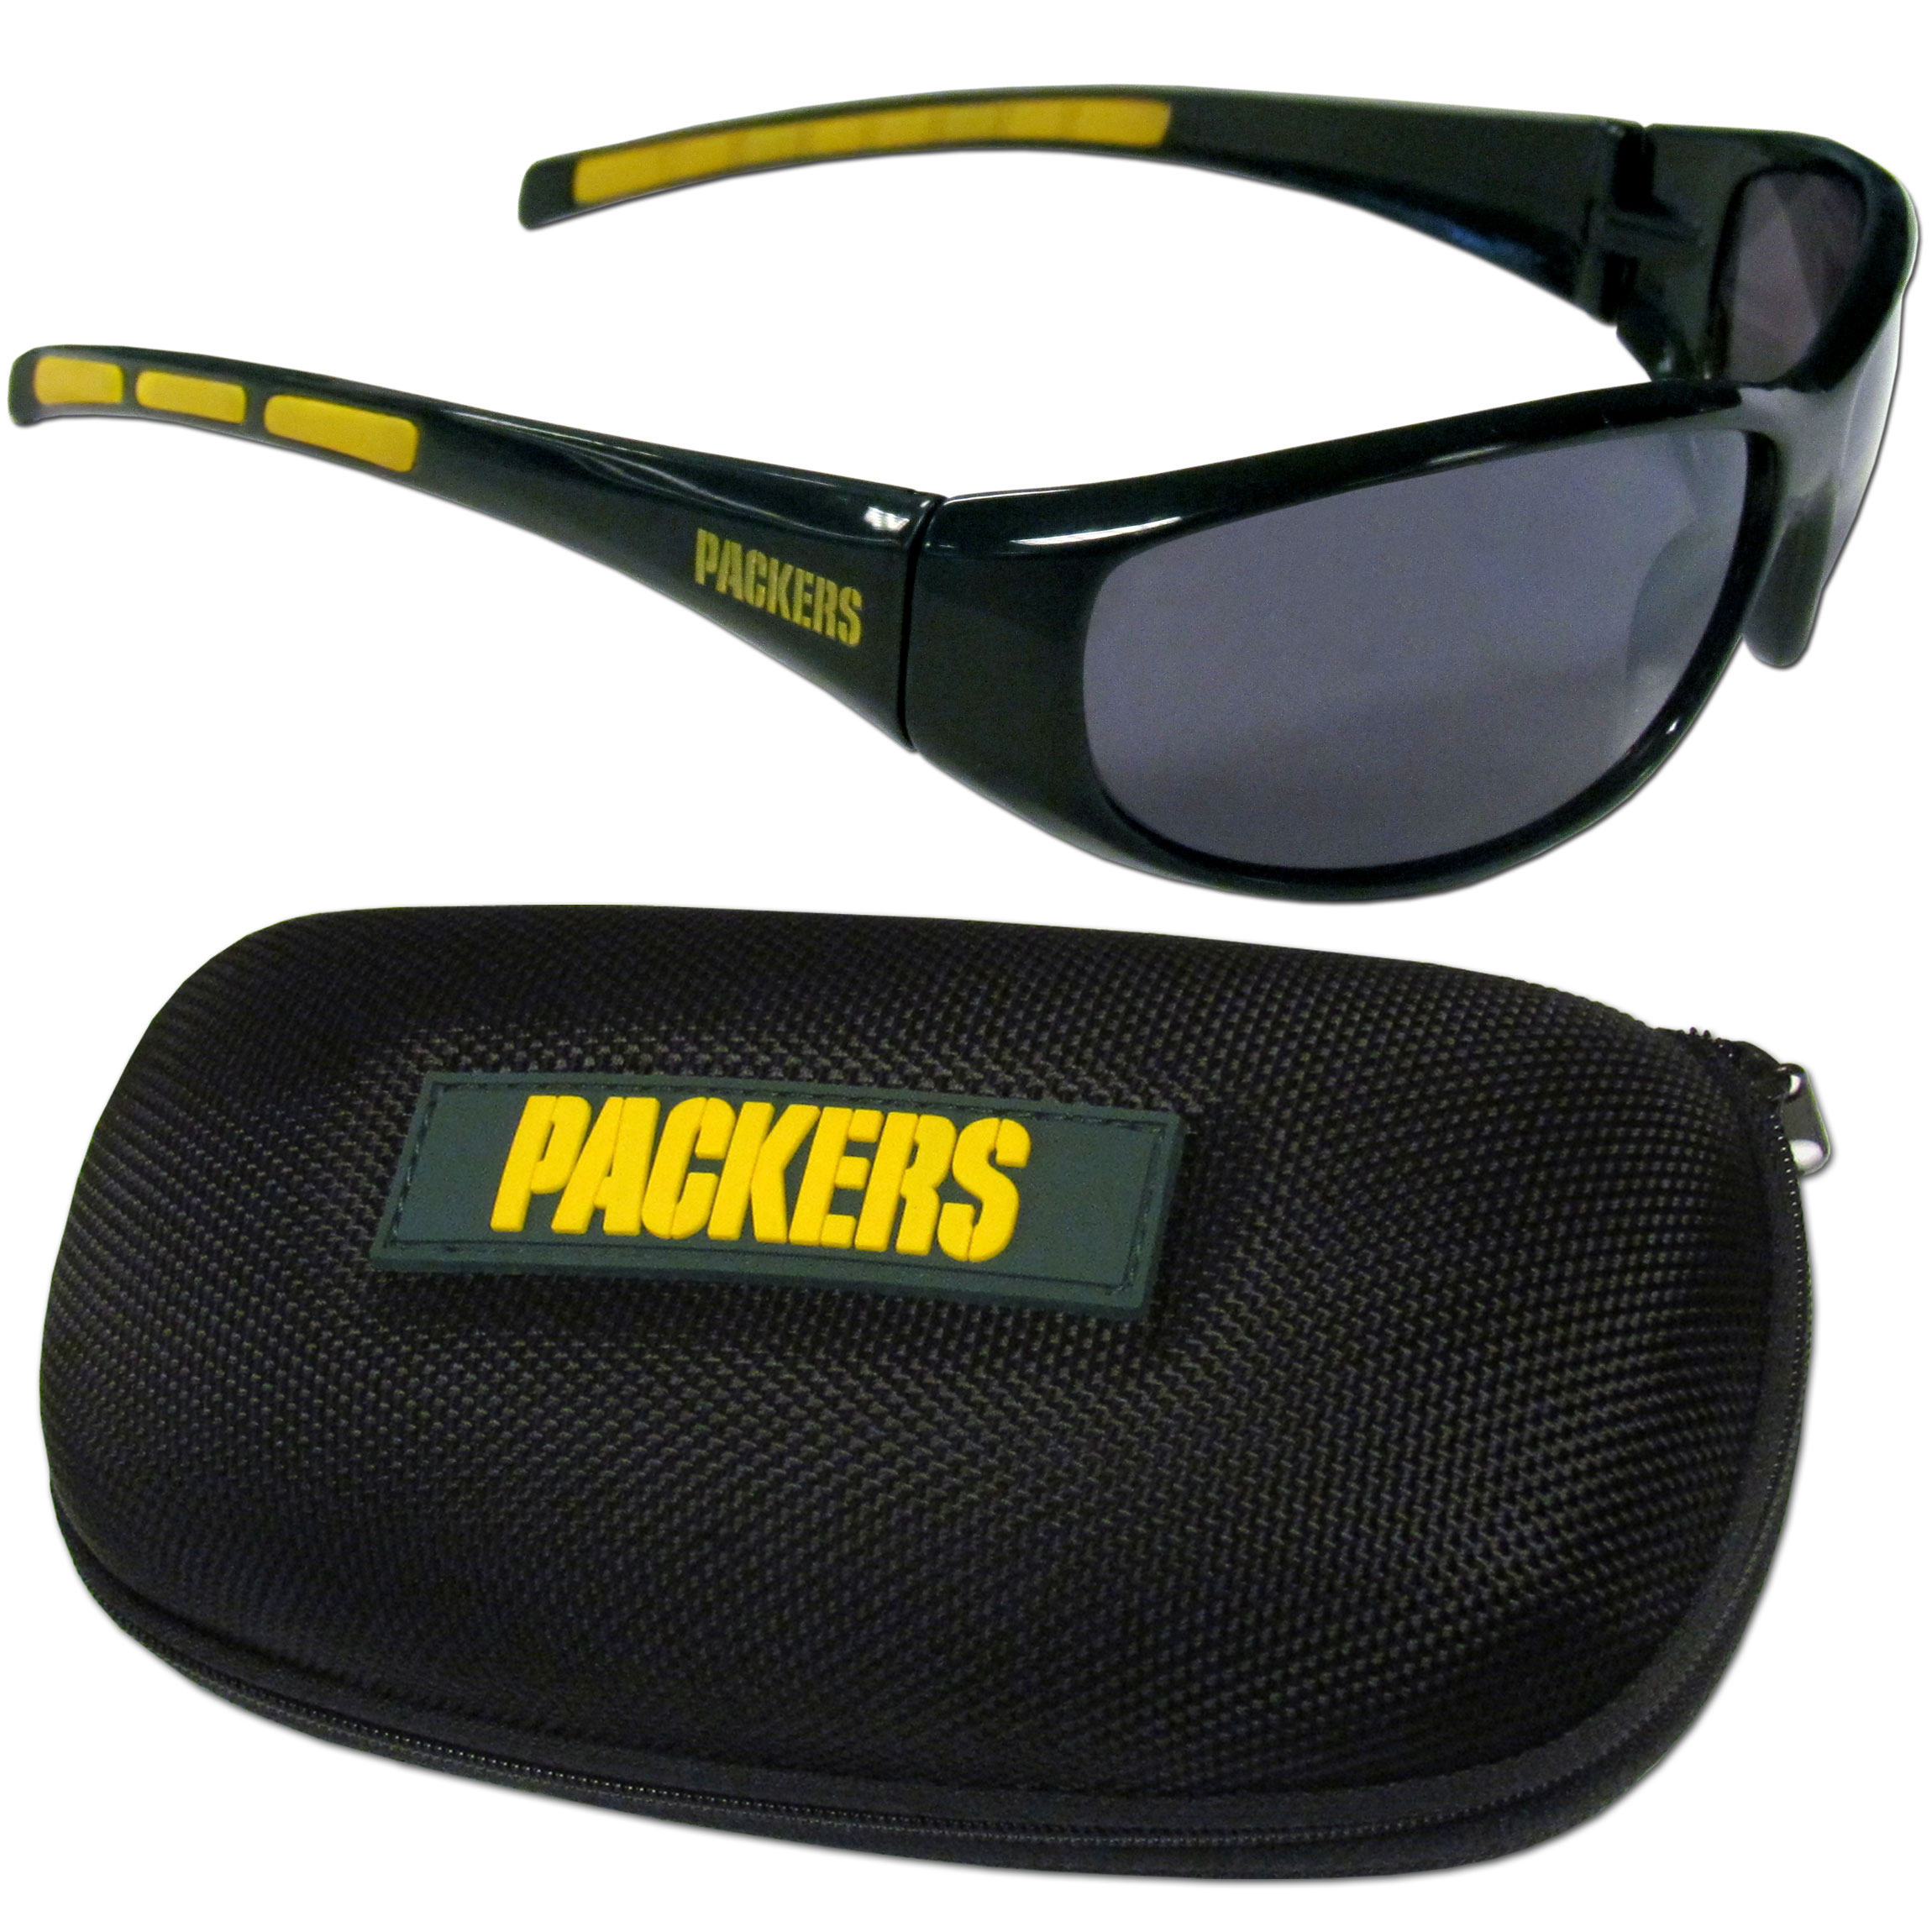 Green Bay Packers Wrap Sunglass and Case Set - This great set includes a high quality pair of Green Bay Packers wrap sunglasses and hard carrying case.